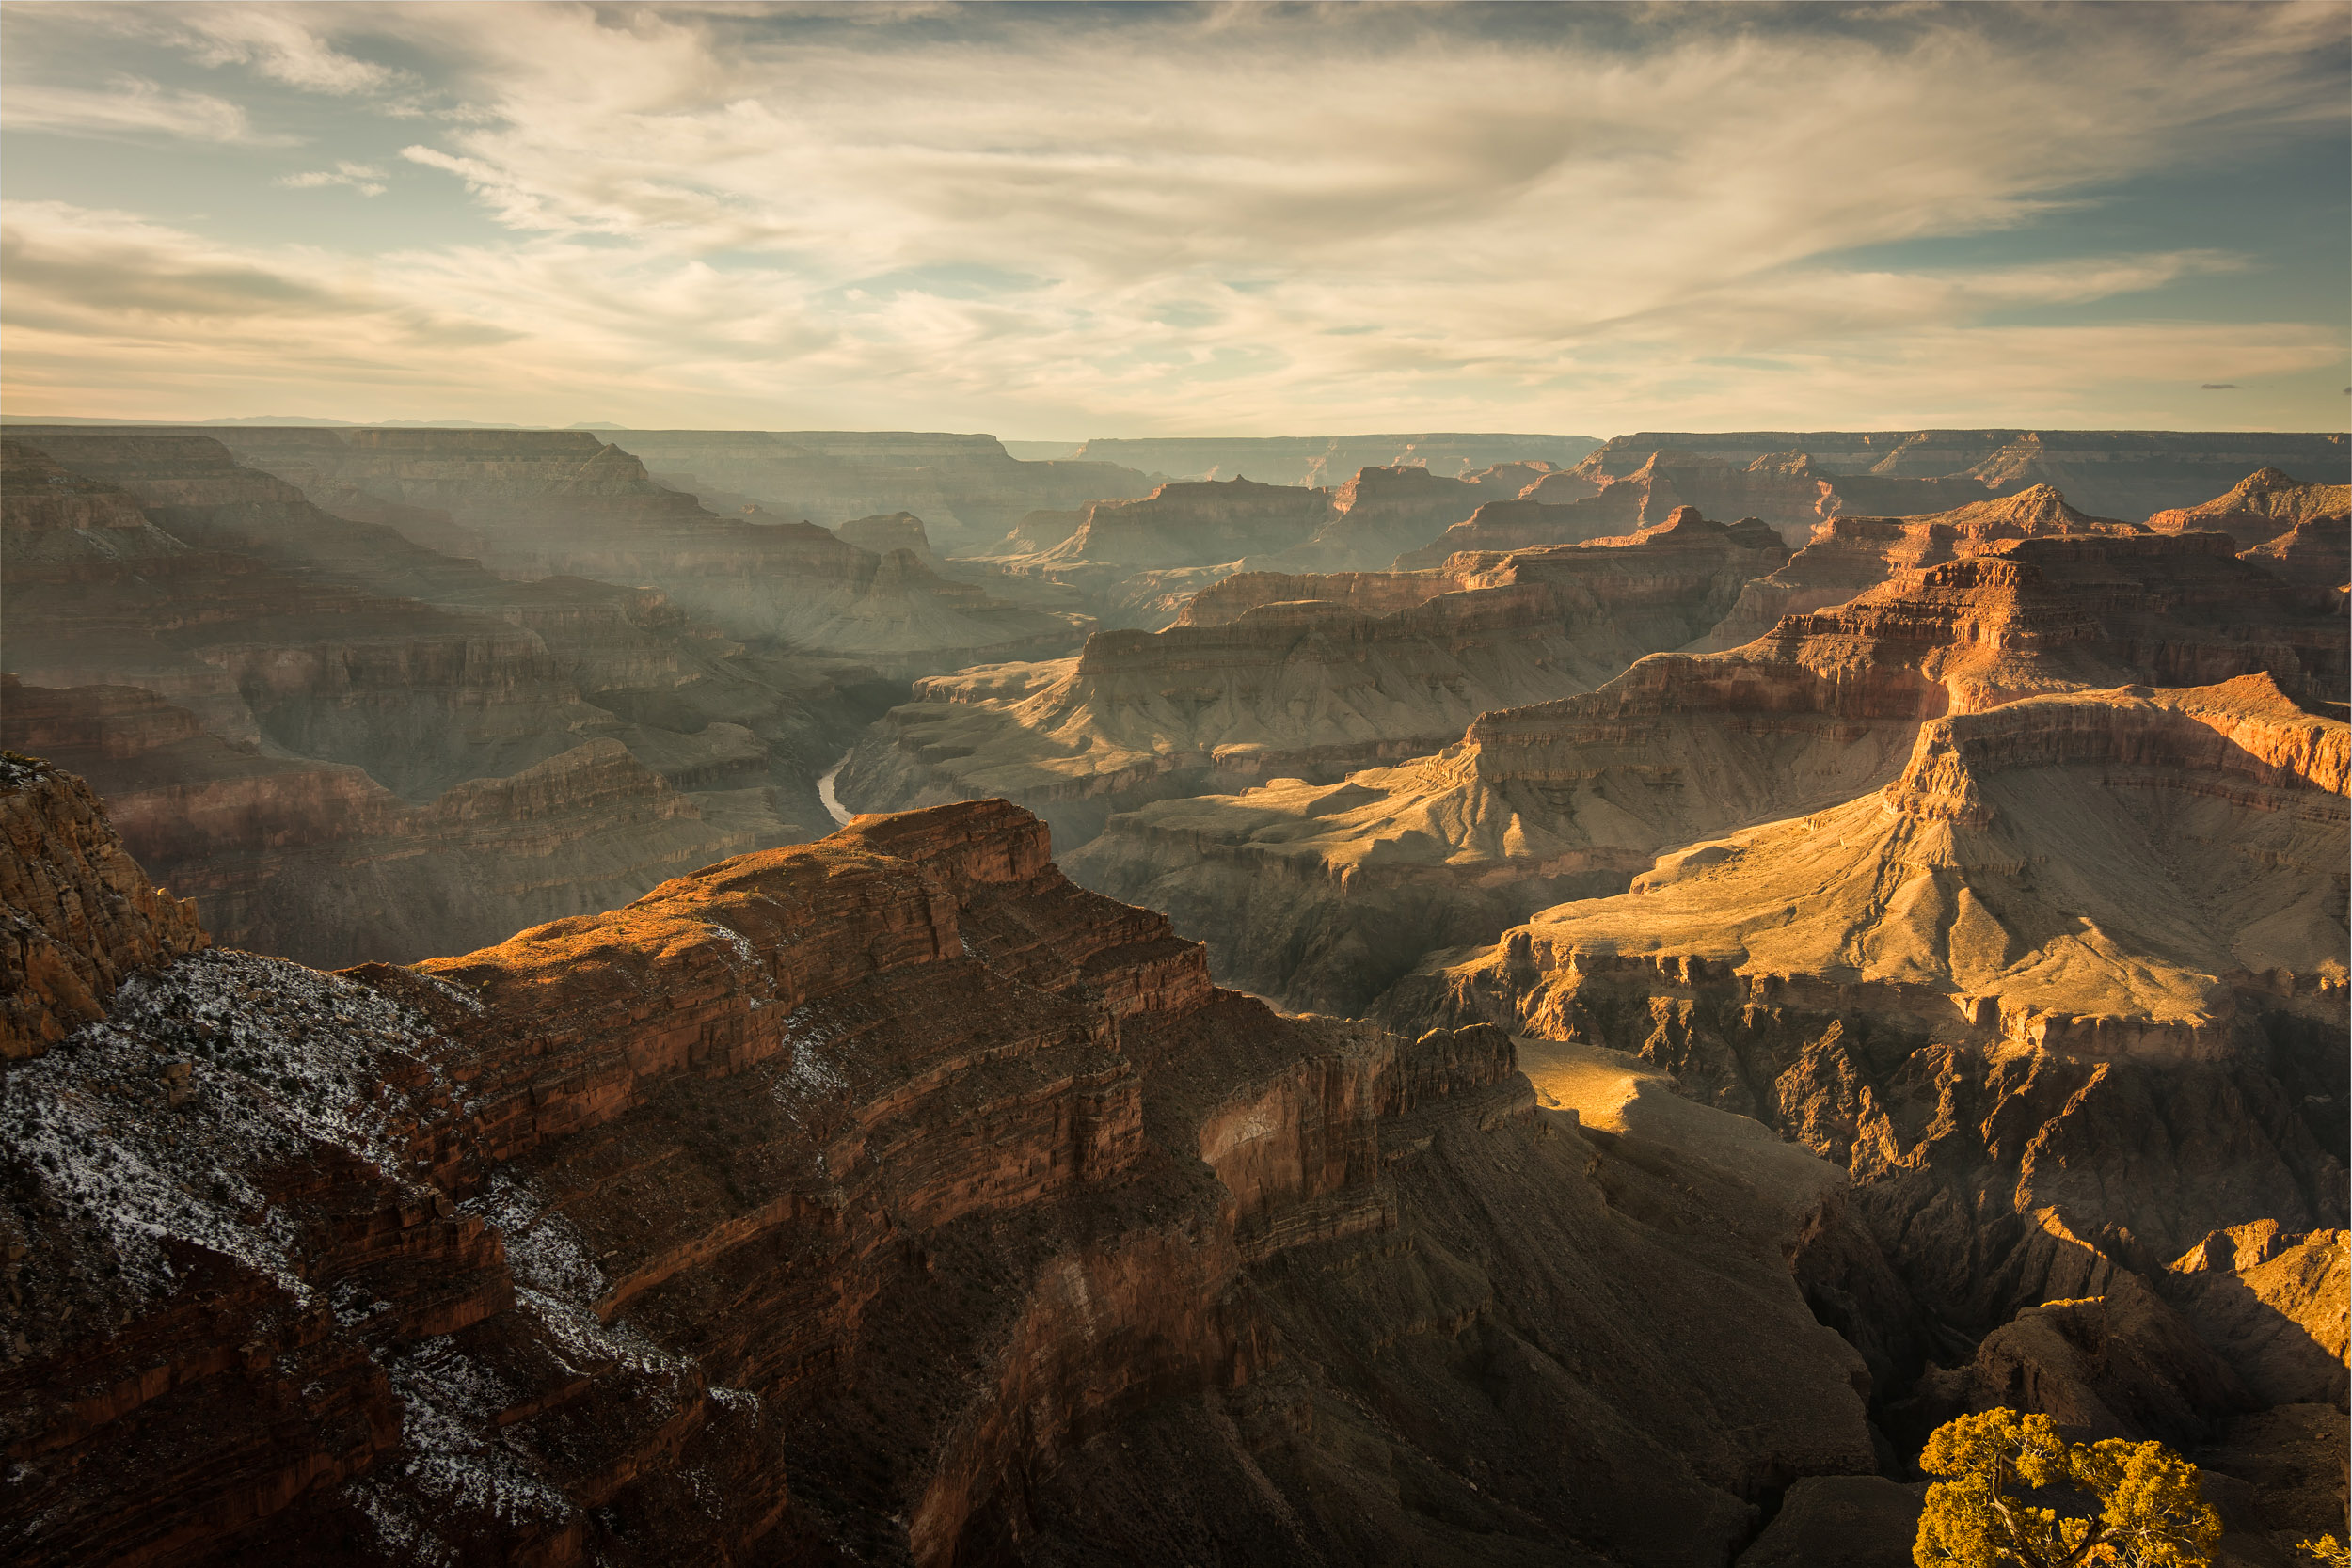 scenic-landscape-of-the-grand-canyon-arizona